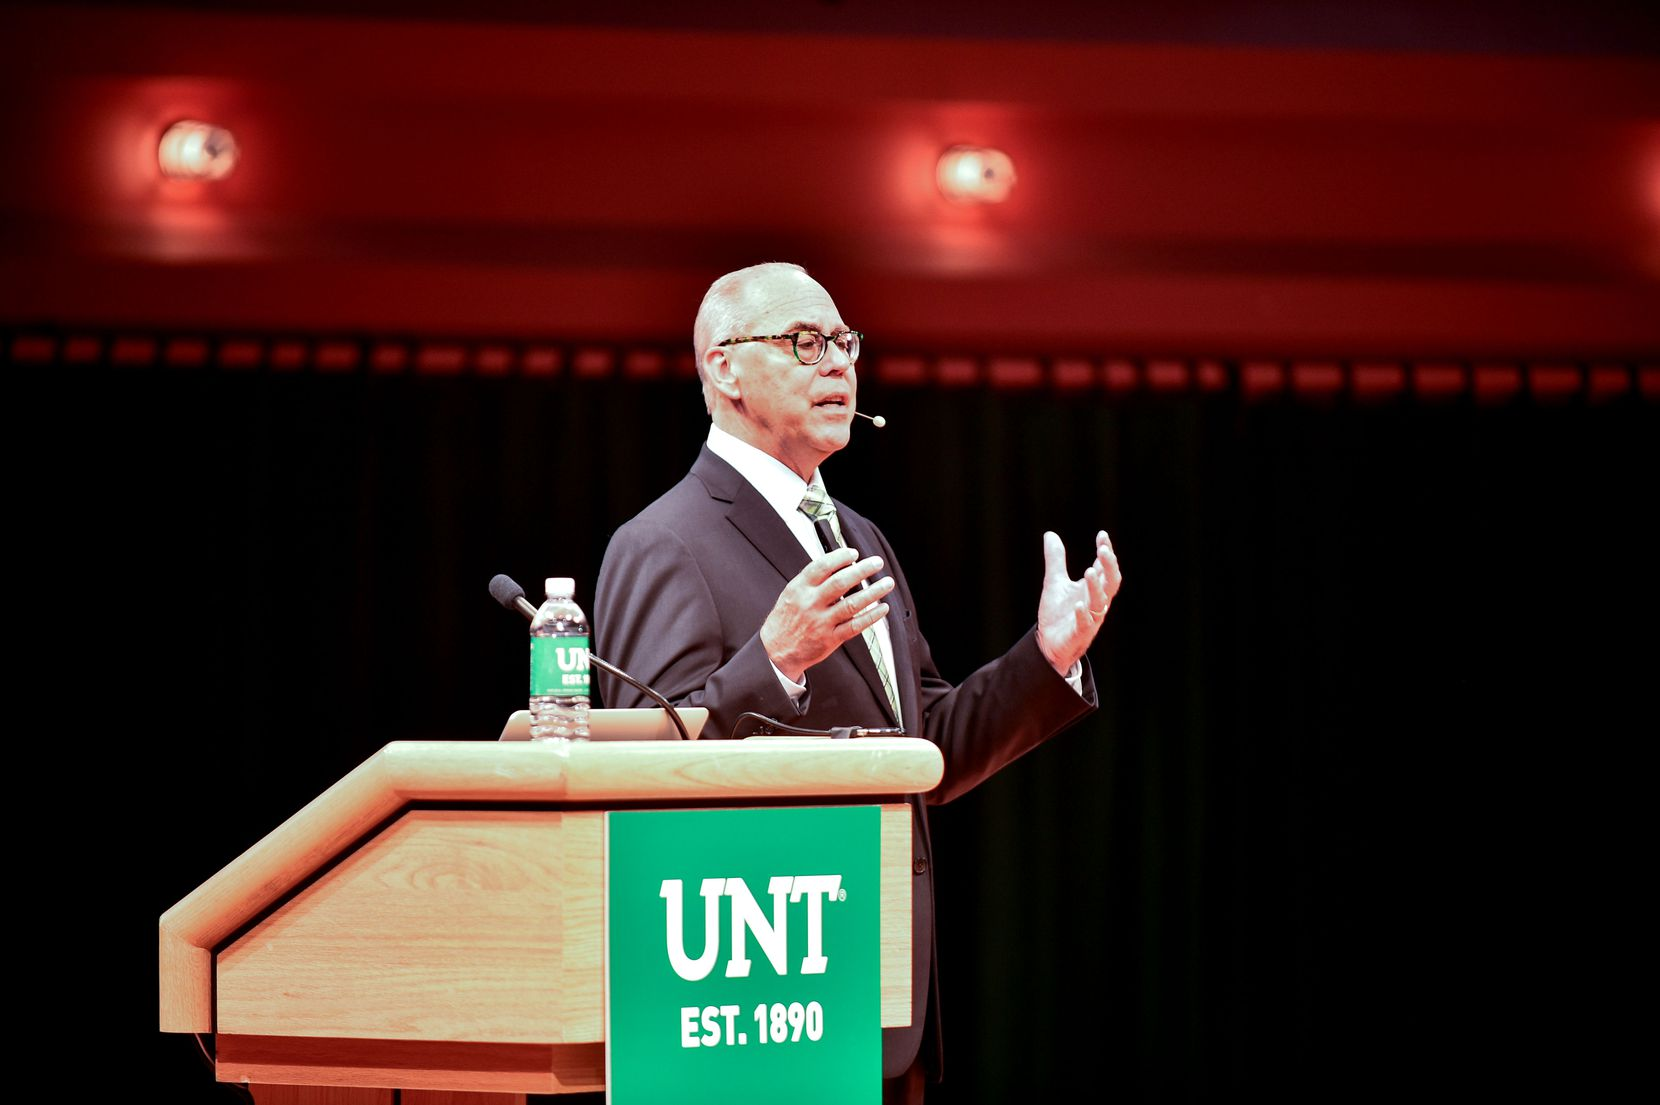 University of North Texas President Neal Smatresk gives his state of the university address in September 2016 at the Murchison Performing Arts Center.